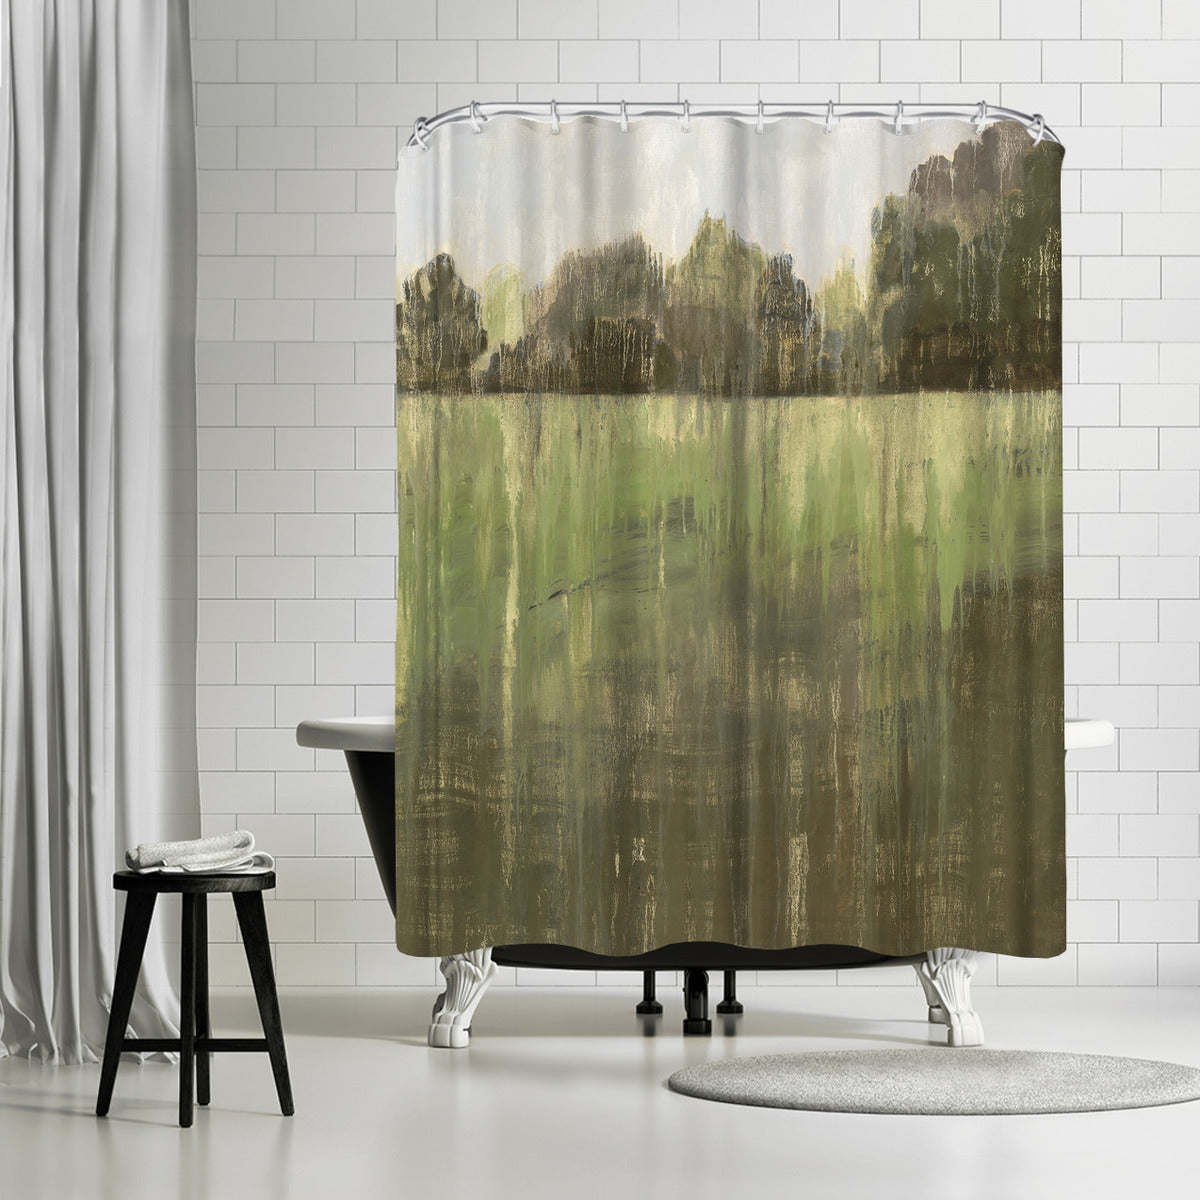 Green Field Ii by PI Creative Art Shower Curtain - Shower Curtain - Americanflat